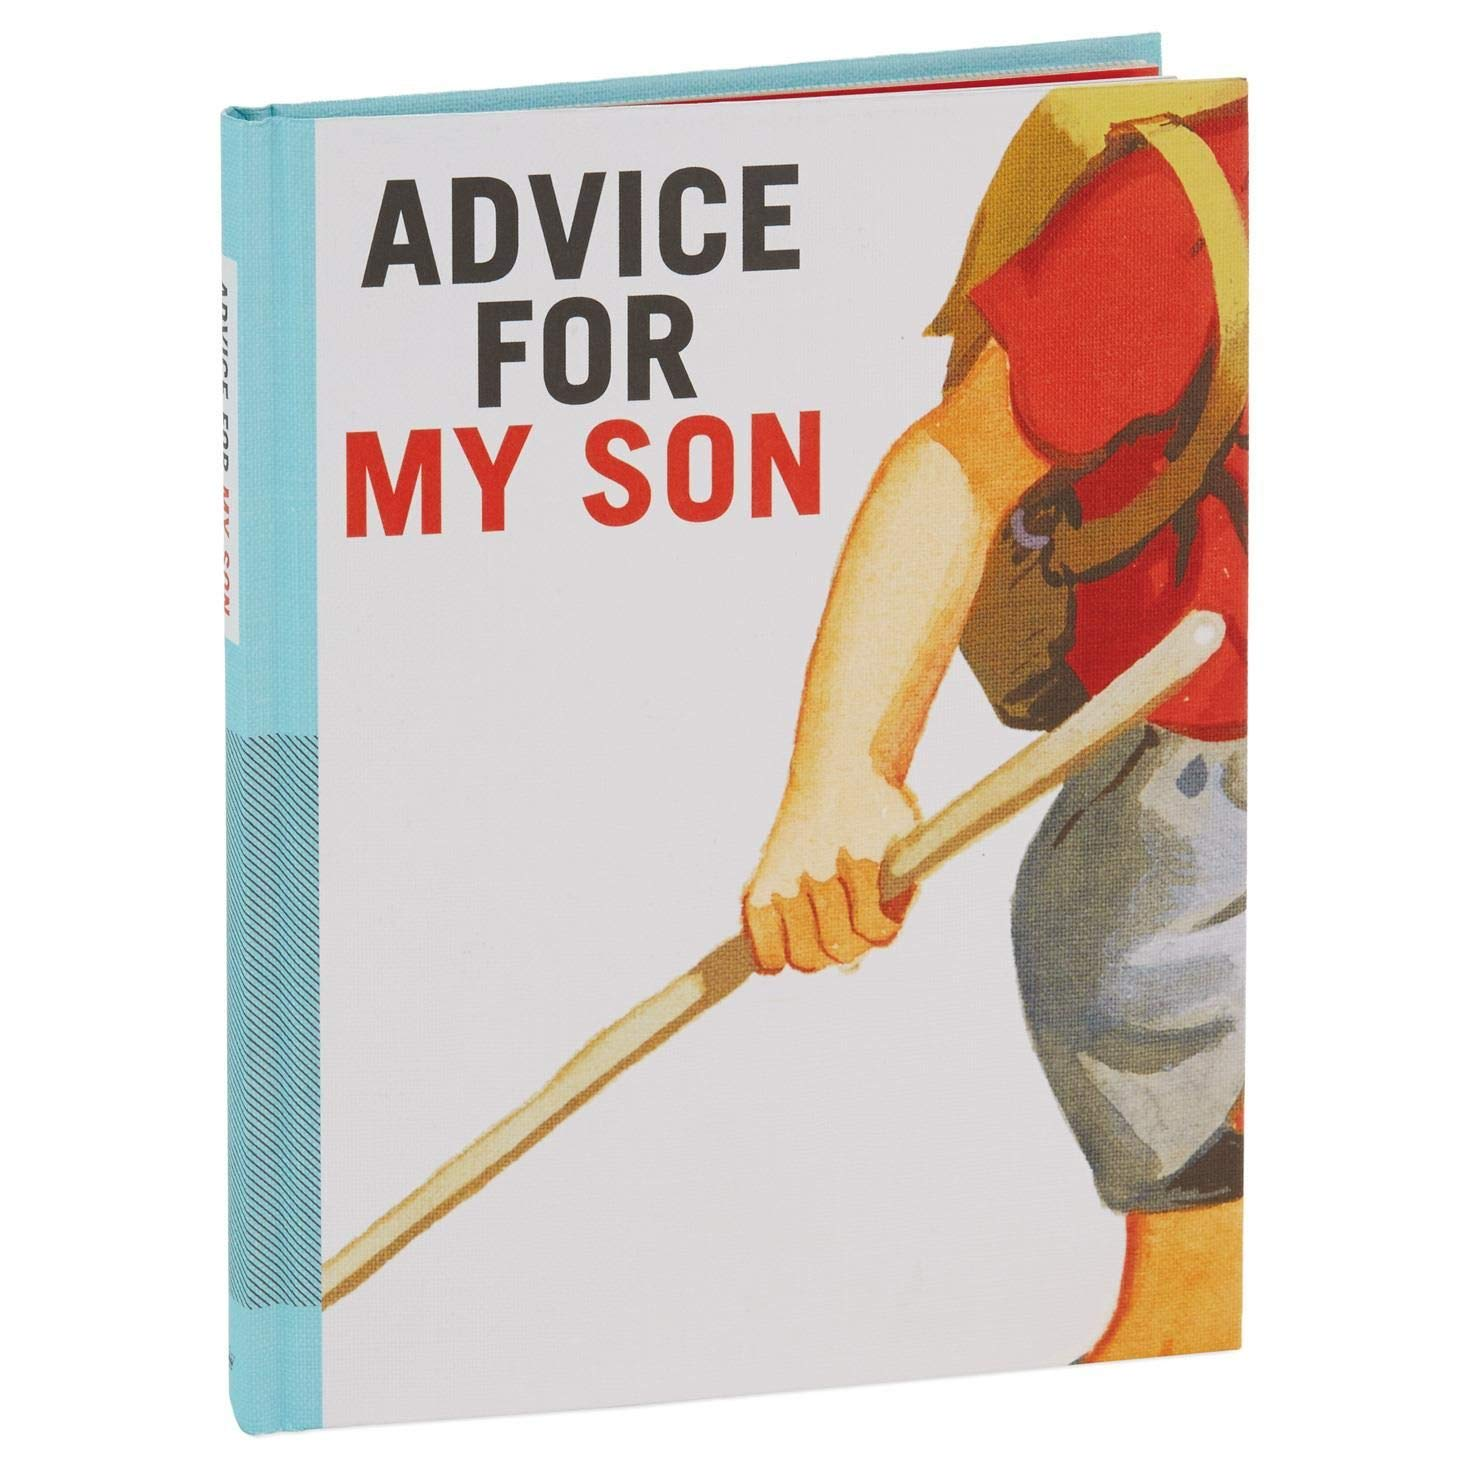 Hallmark Advice for My Son Gift Book Relationship Books Family /& Relationships